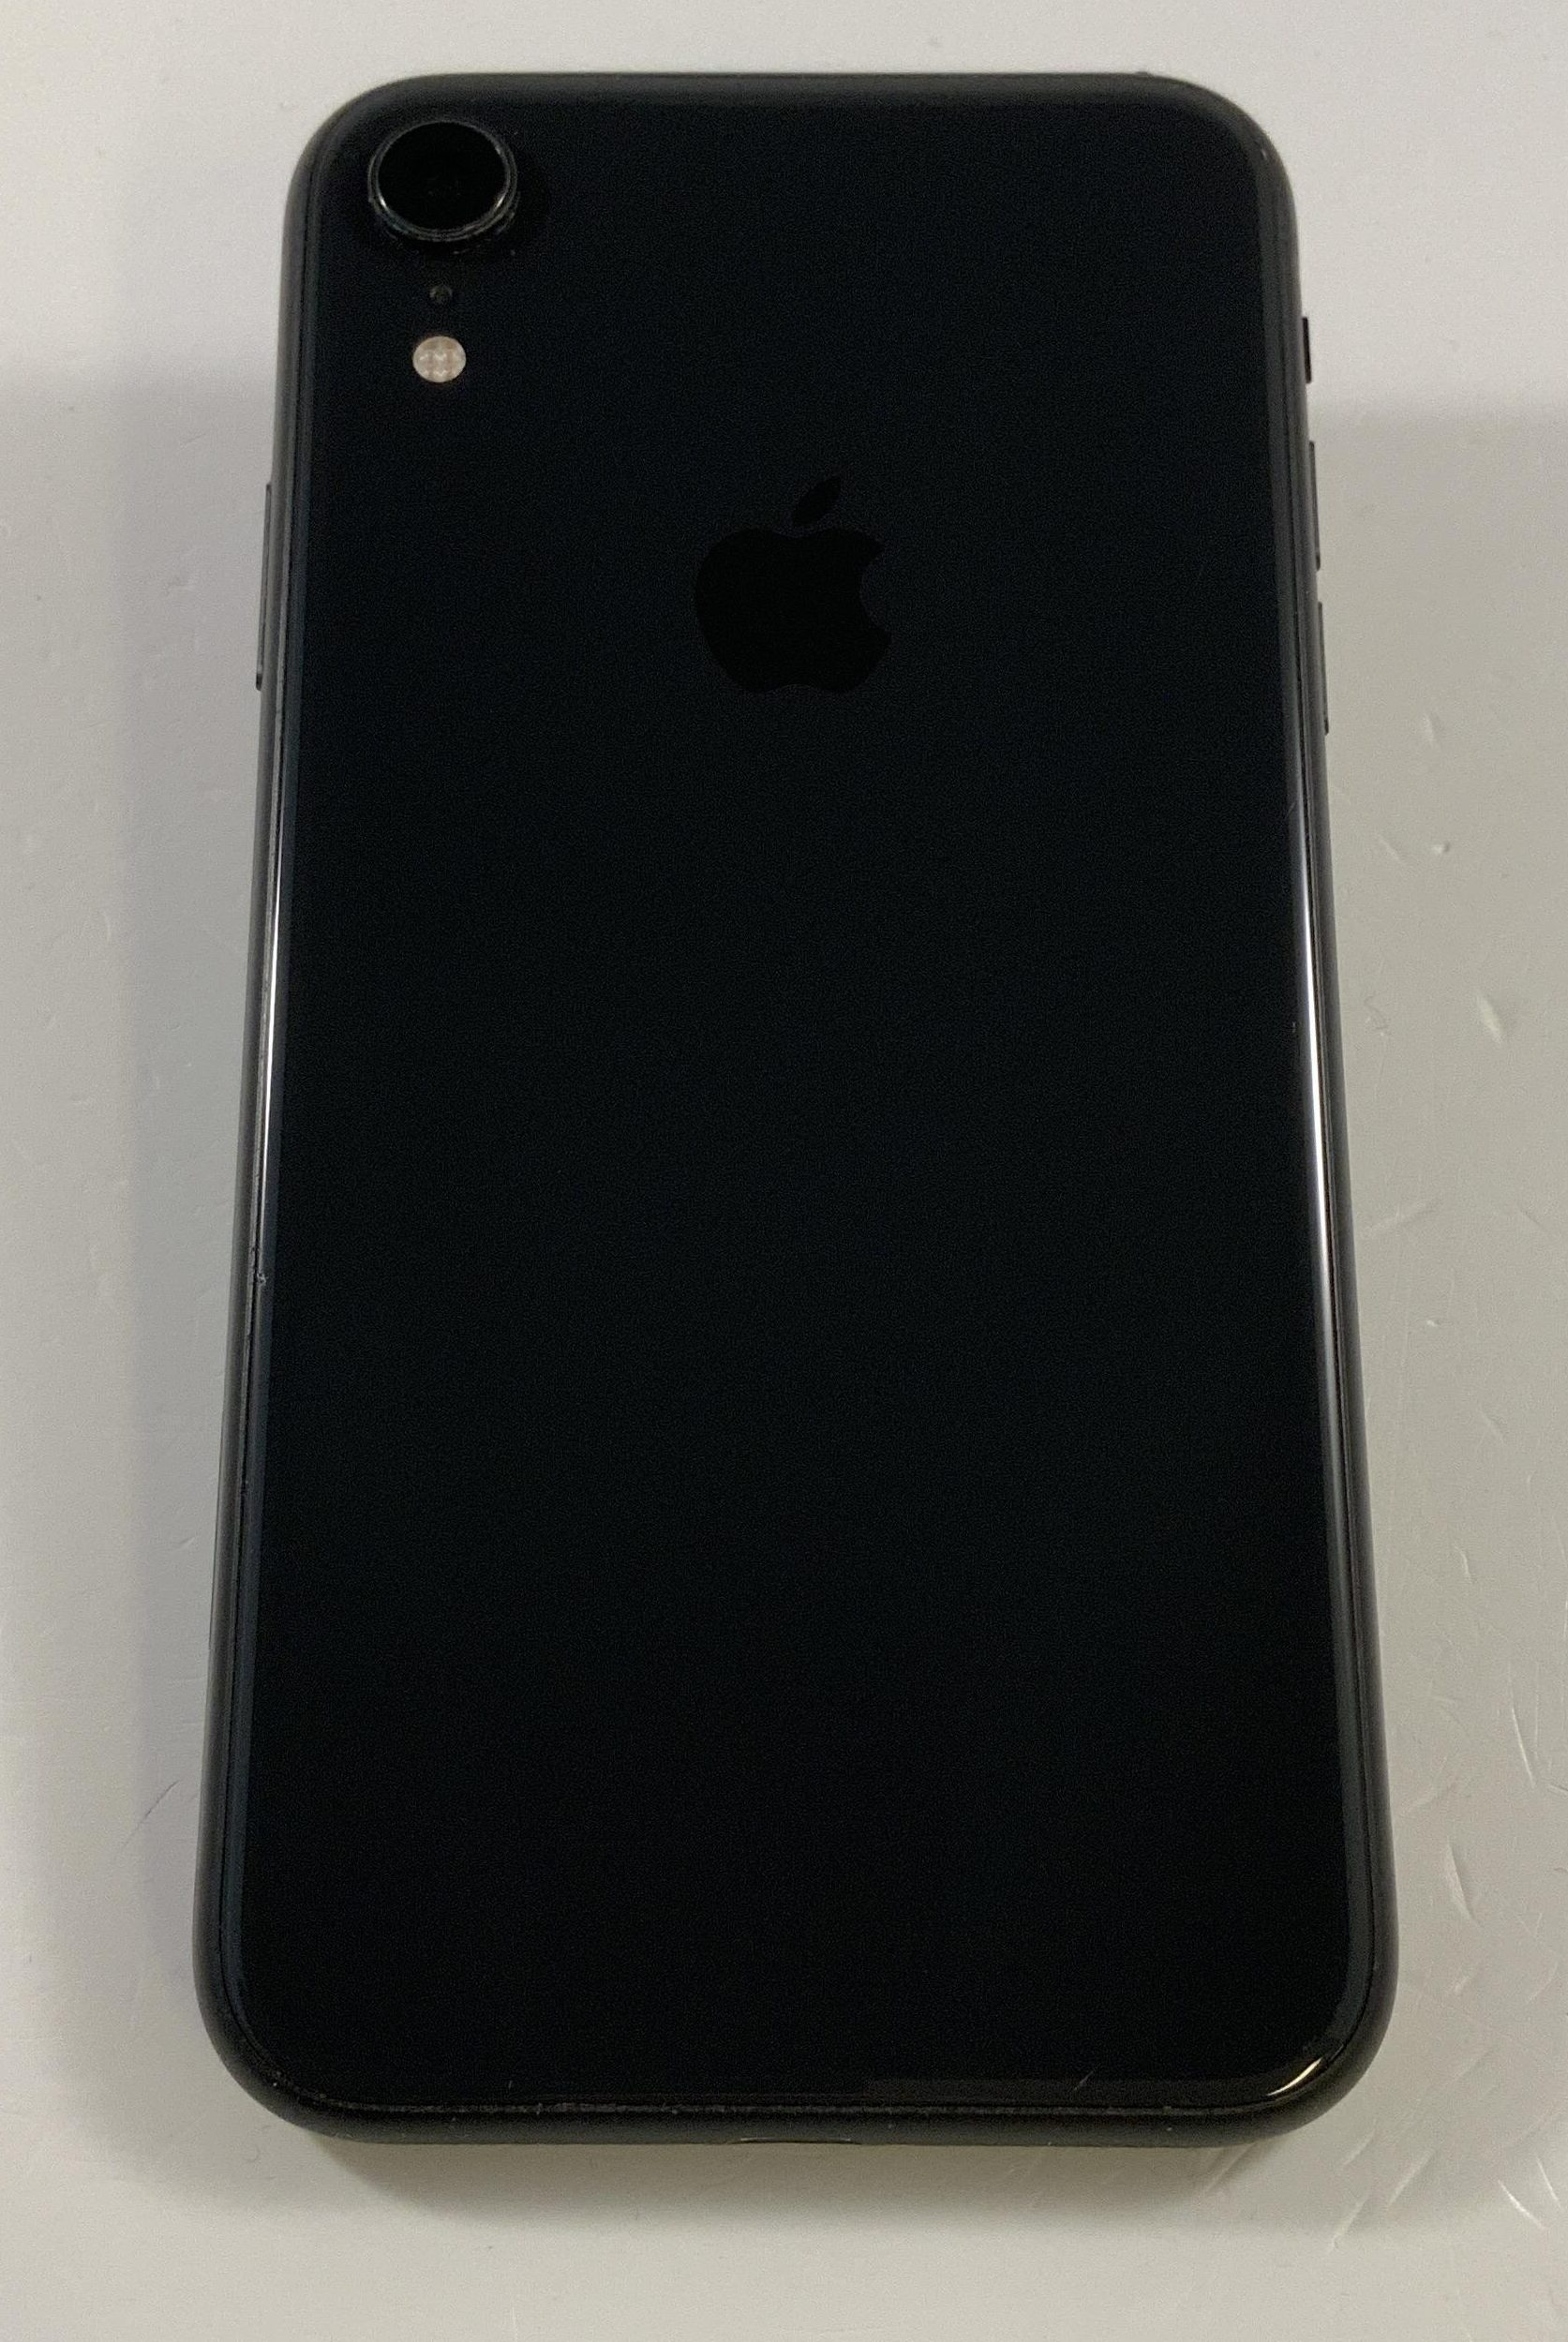 iPhone XR 64GB, 64GB, Black, immagine 2